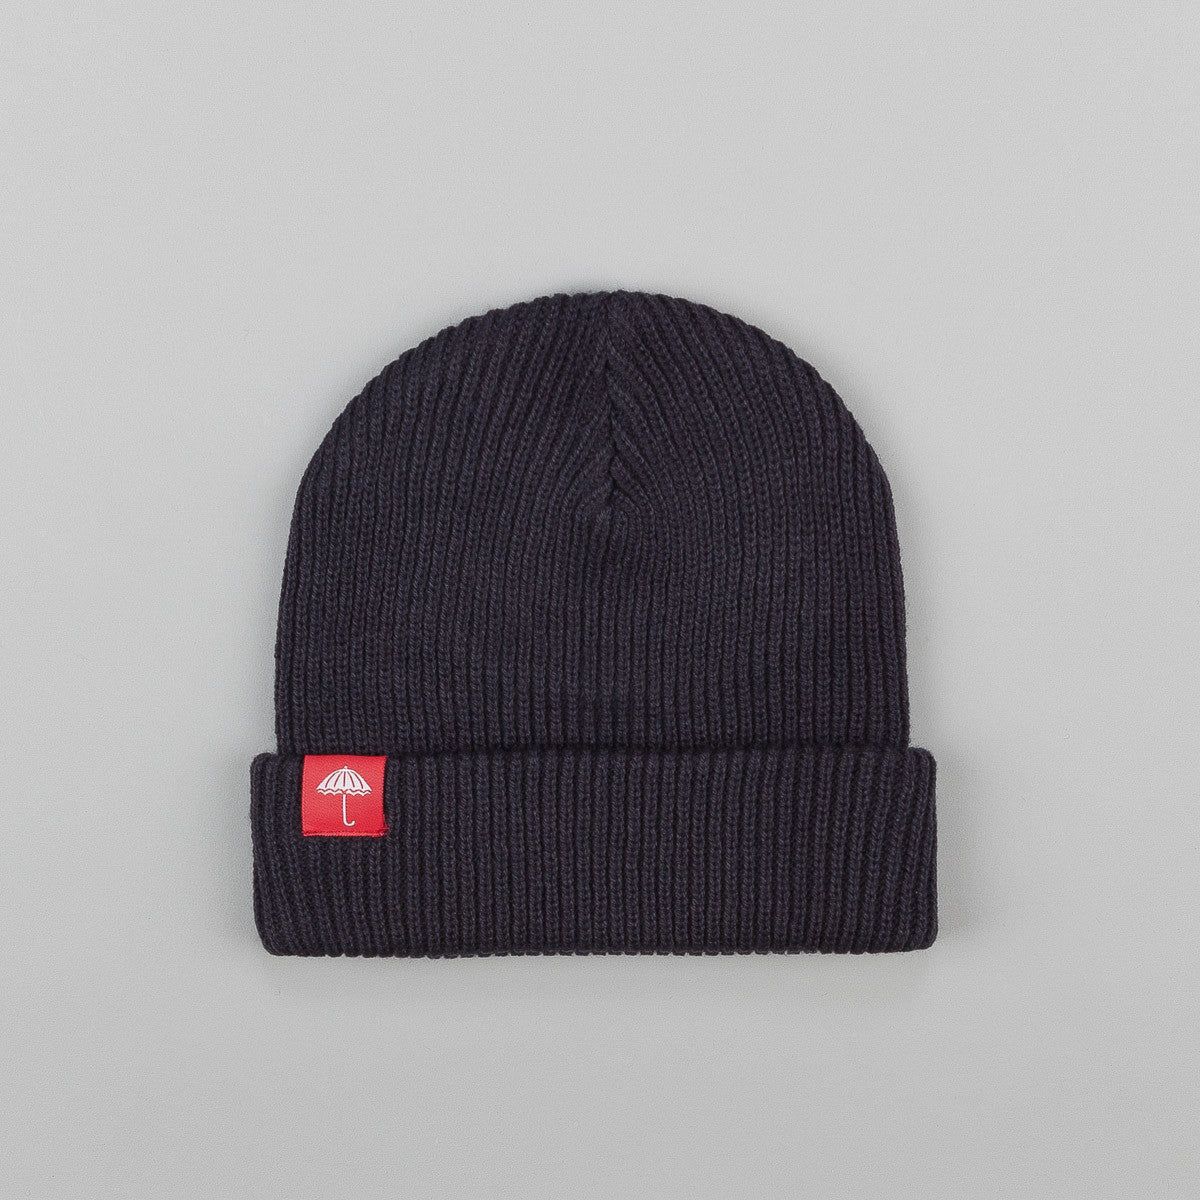 Hĩlas Umbrella Beanie - Navy